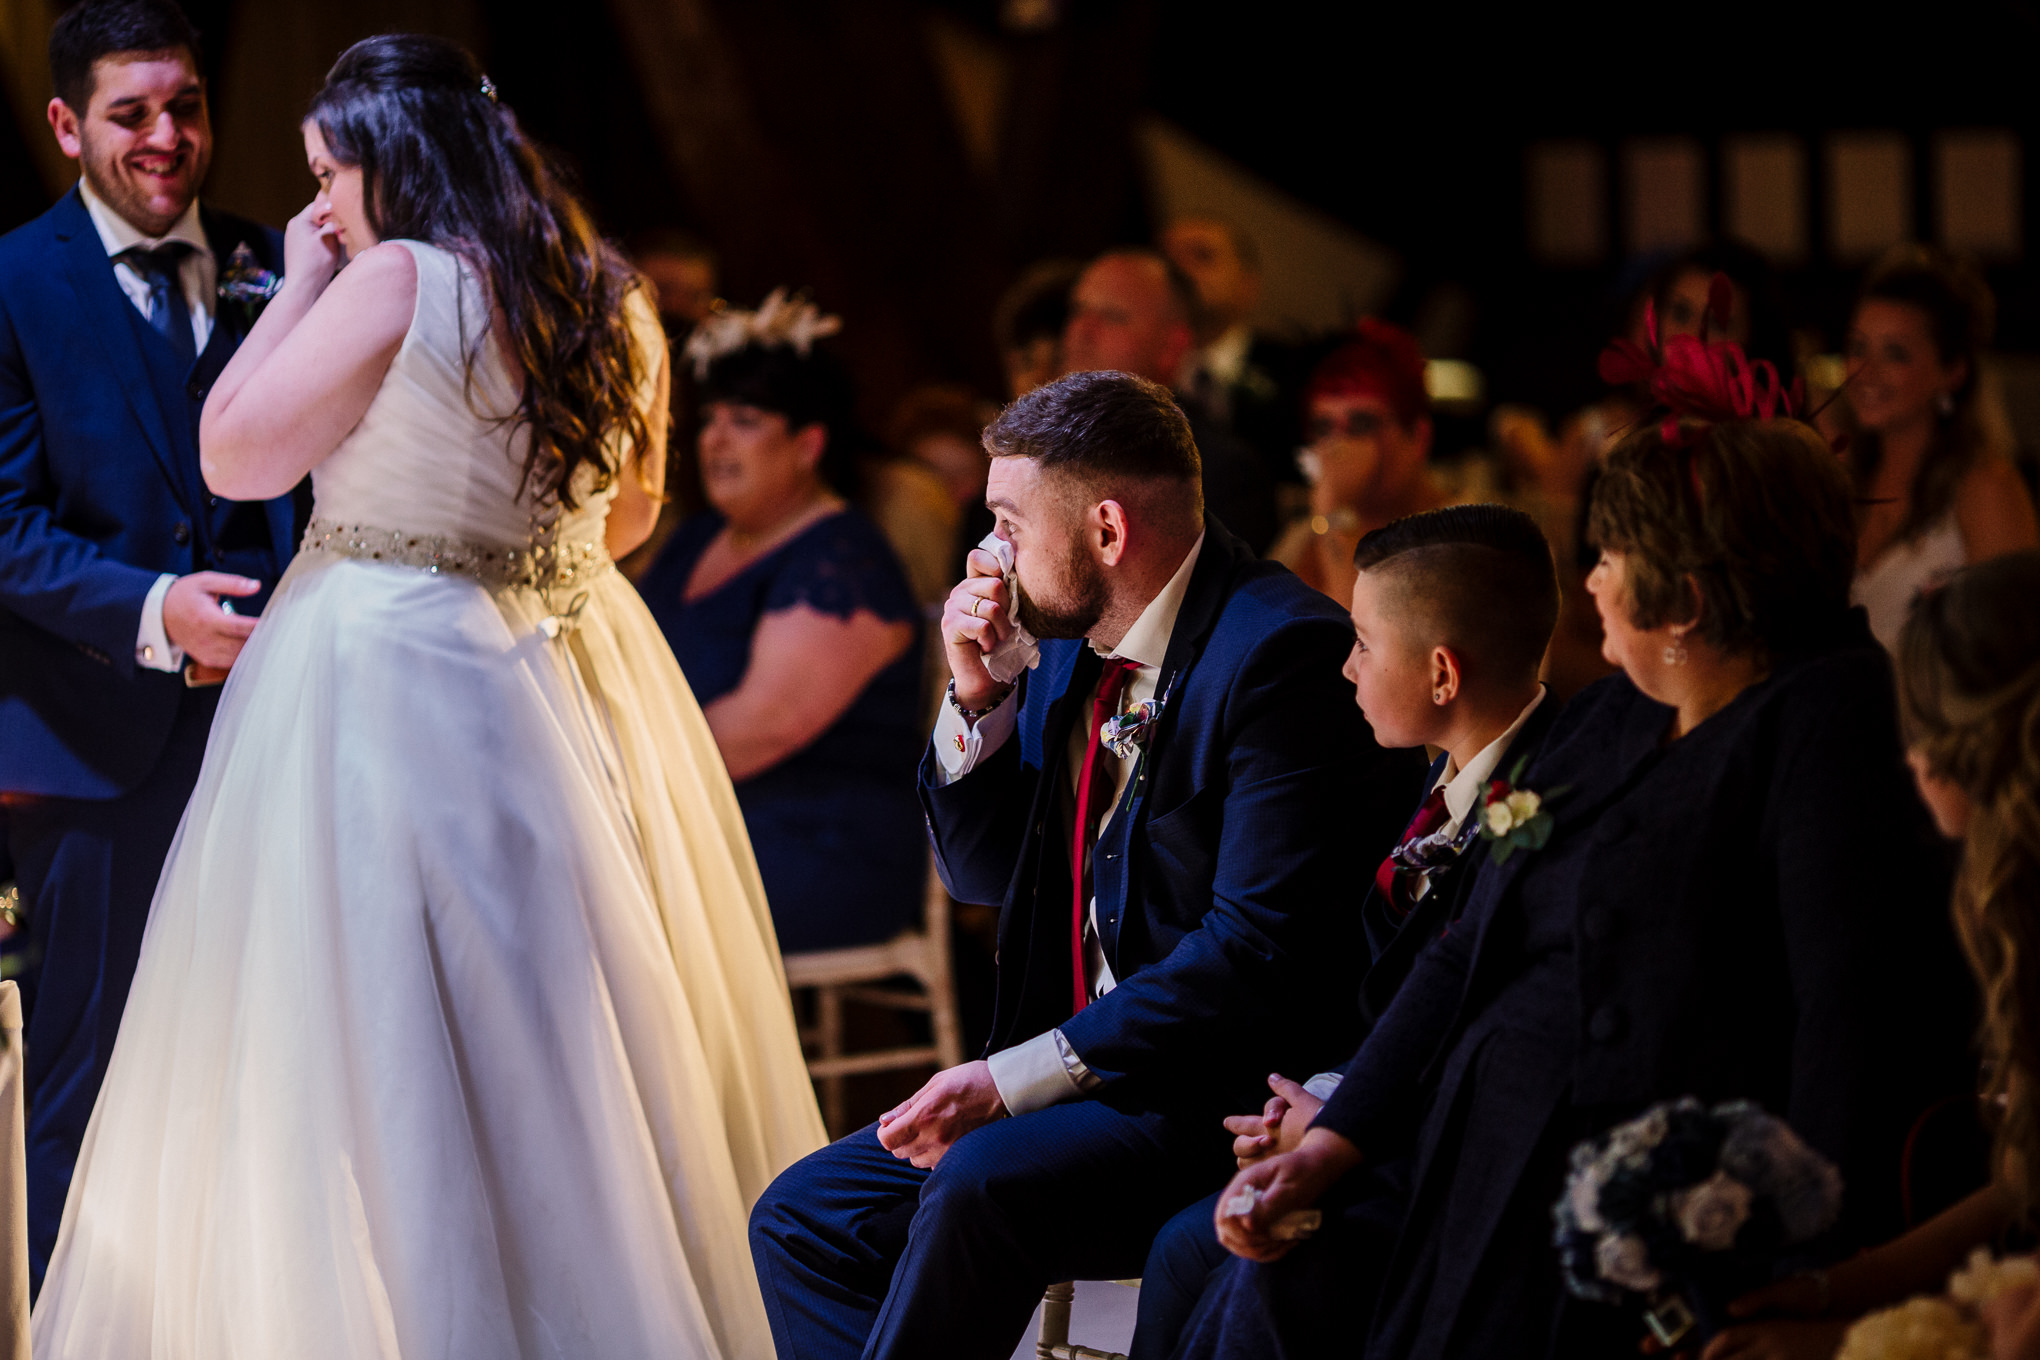 Documentary photo of brides brother crying during the wedding ceremony.